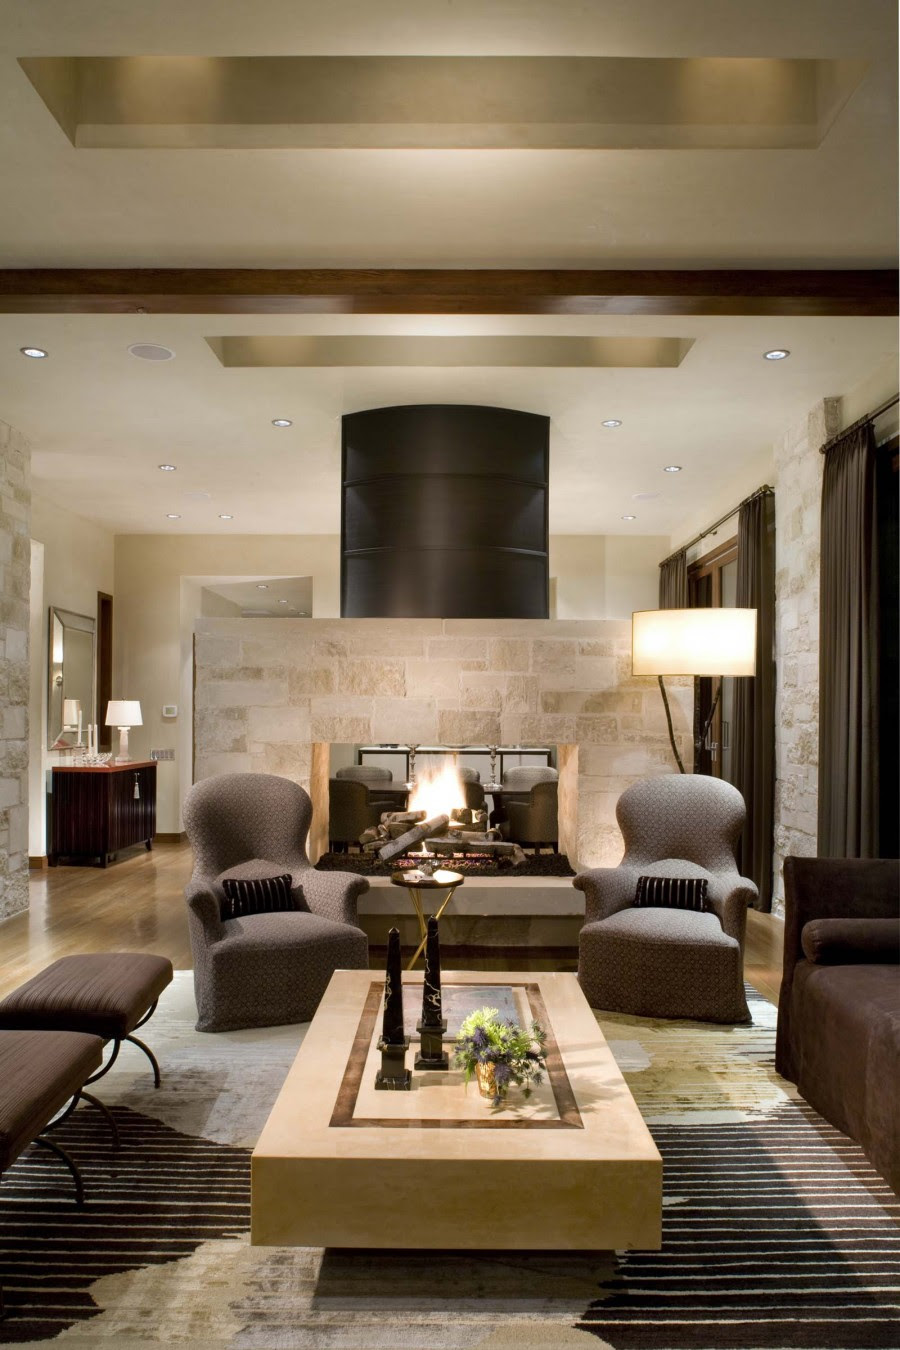 Best of Living Room Lighting | Living Room Decorating ...